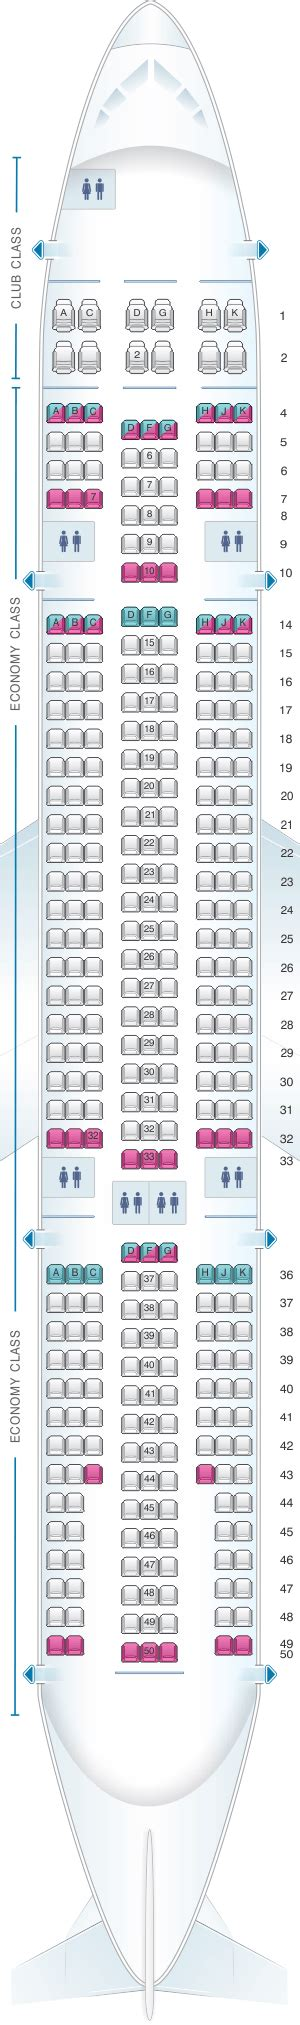 air transat selection de siege air transat seat selection map brokeasshome com